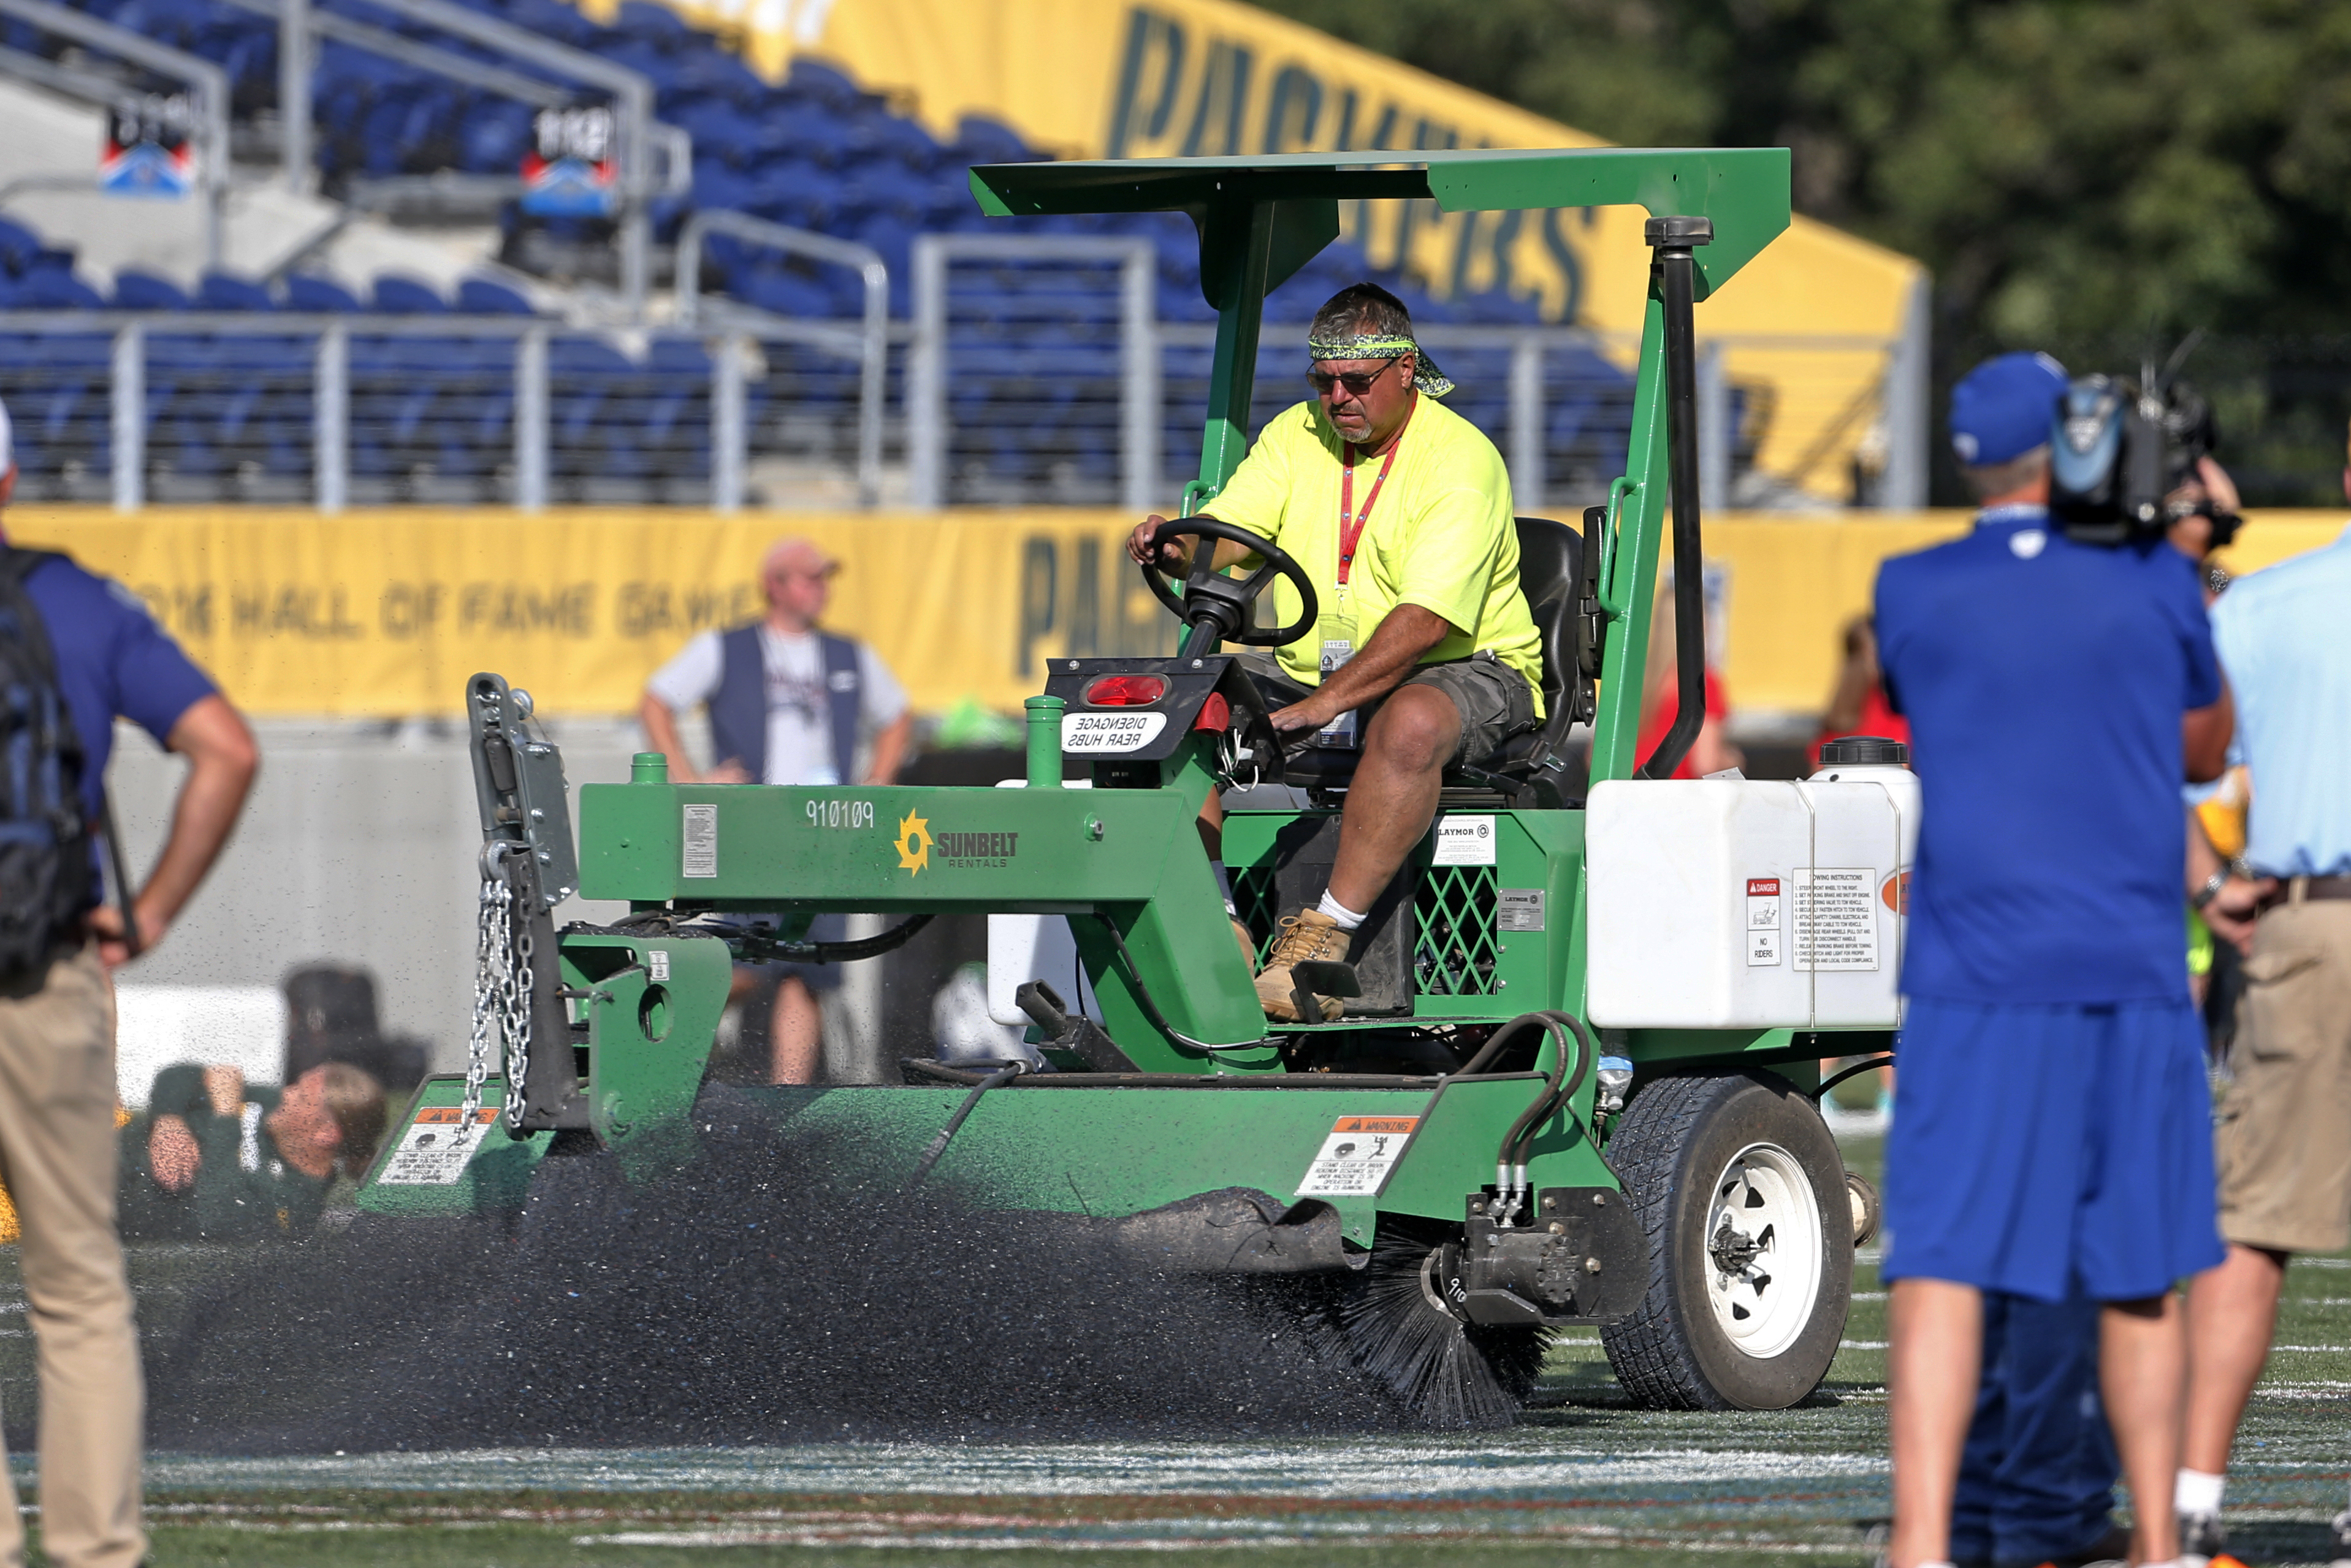 The ground crew at Tom Benson Hall of Fame Stadium scrape the painted logo off the center of the field before an NFL preseason football game between the Green Bay Packers and the Indianapolis Colts, Sunday, Aug. 7, 2016, in Canton, Ohio. (AP Photo/Ron Sch